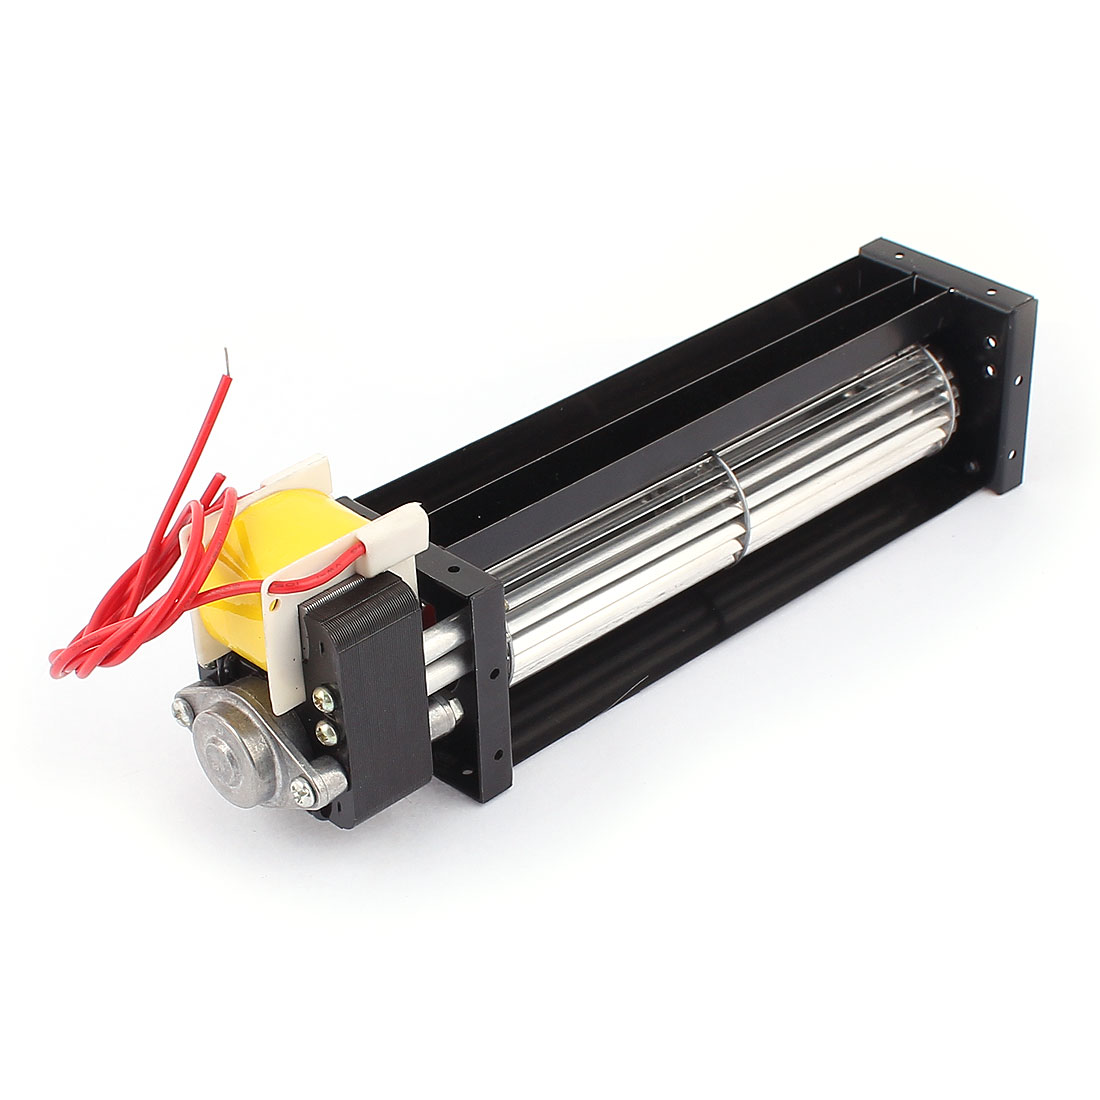 AC 220V 0.1A 12W Cross Flow Cooling Fan Heat Exchanger Amplifier Cooler